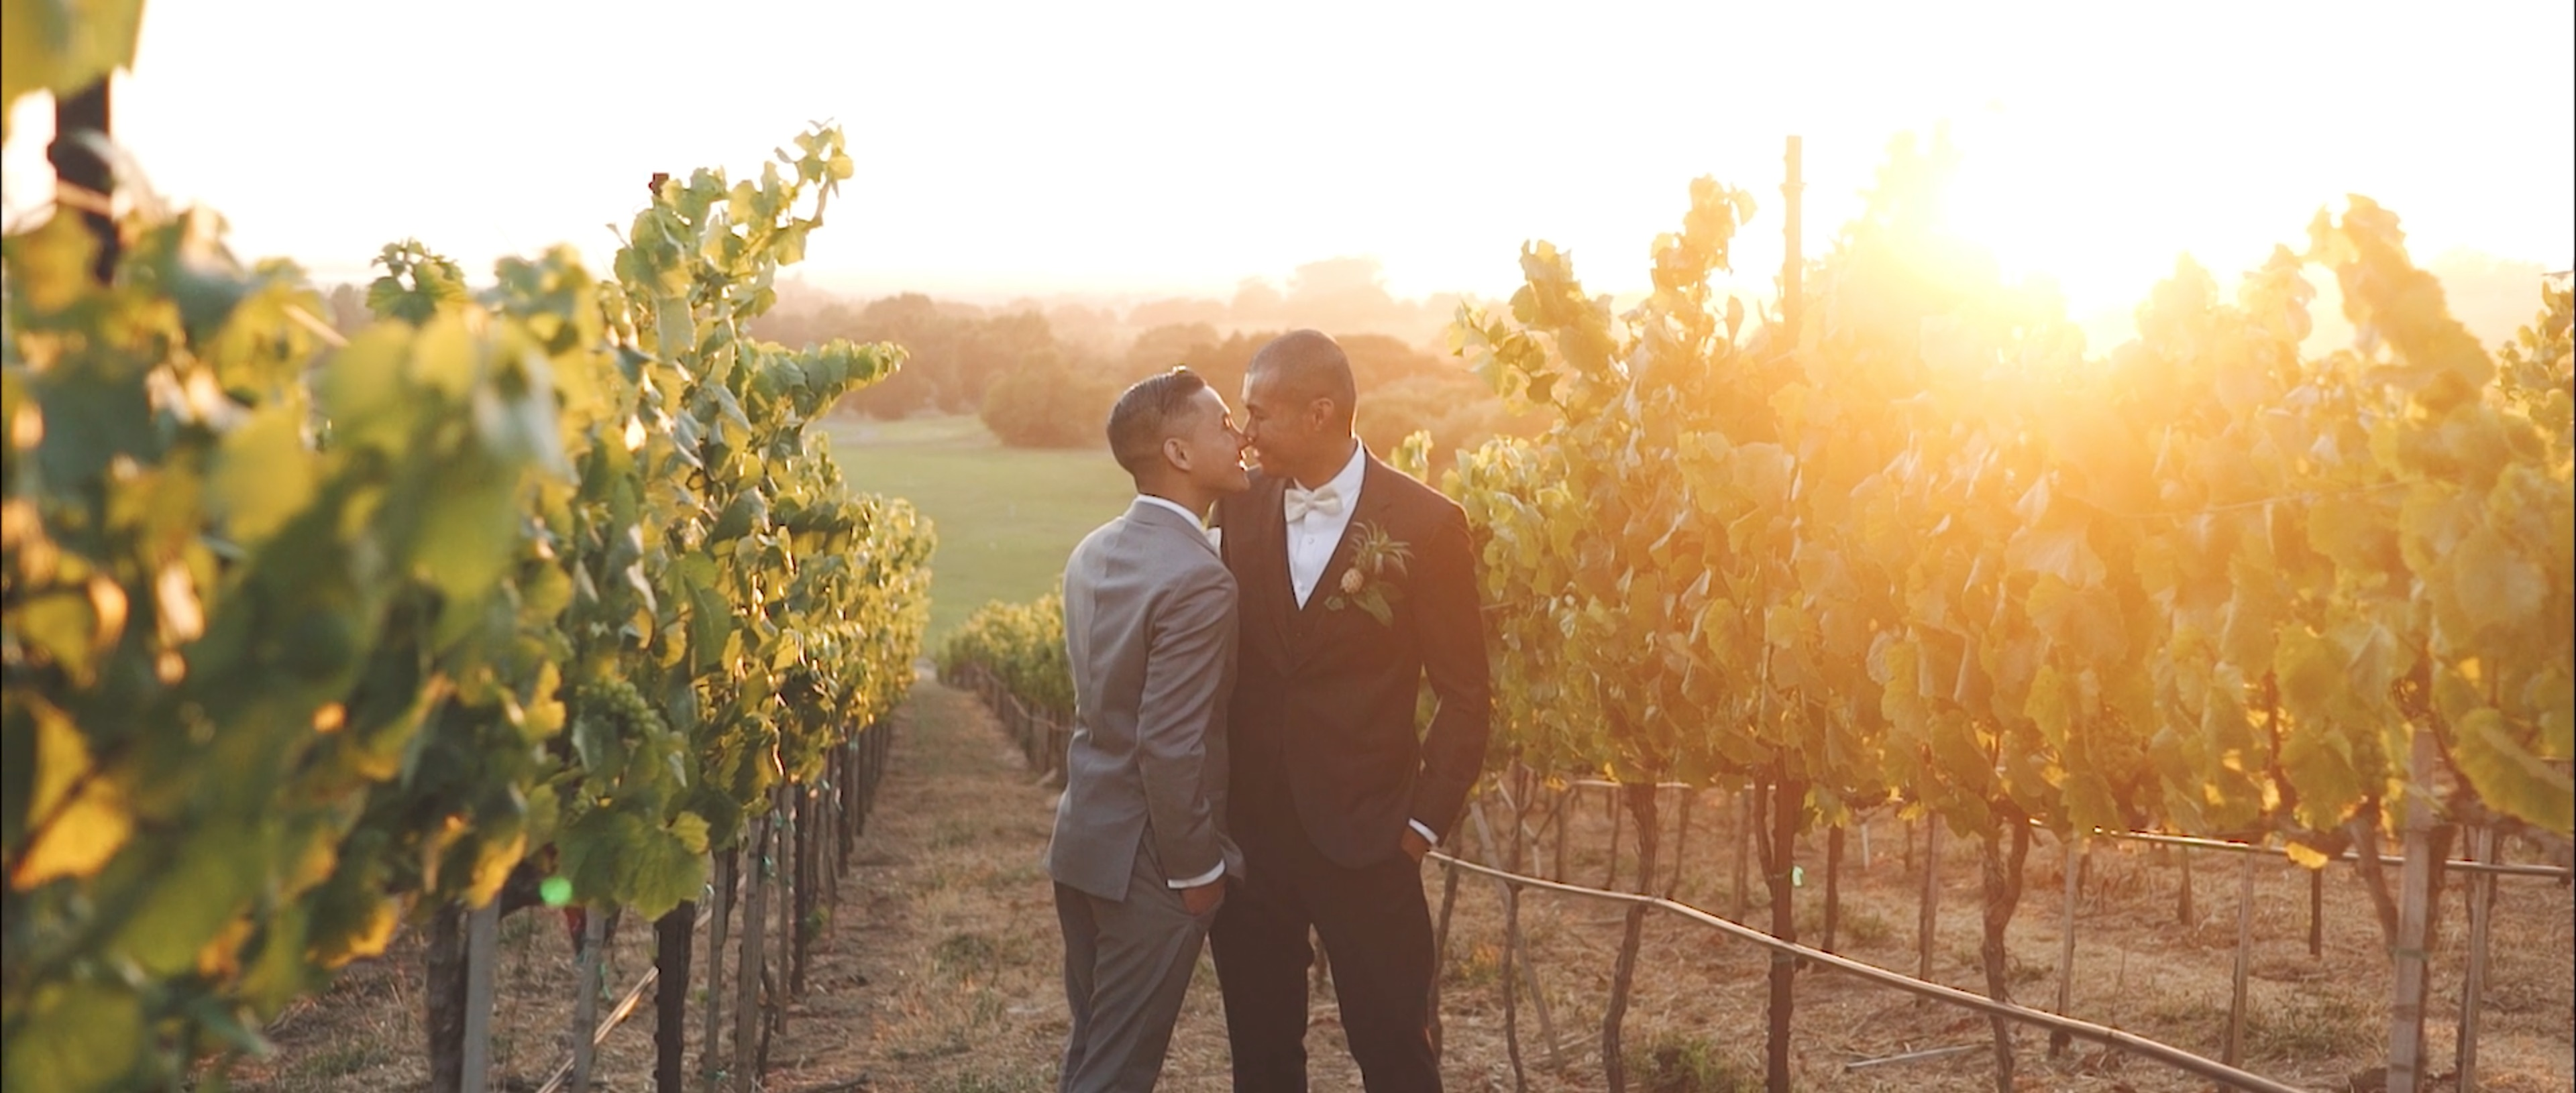 Marvin and Sal Chardonnay Same Sex Wedding Videographer Napa Valle